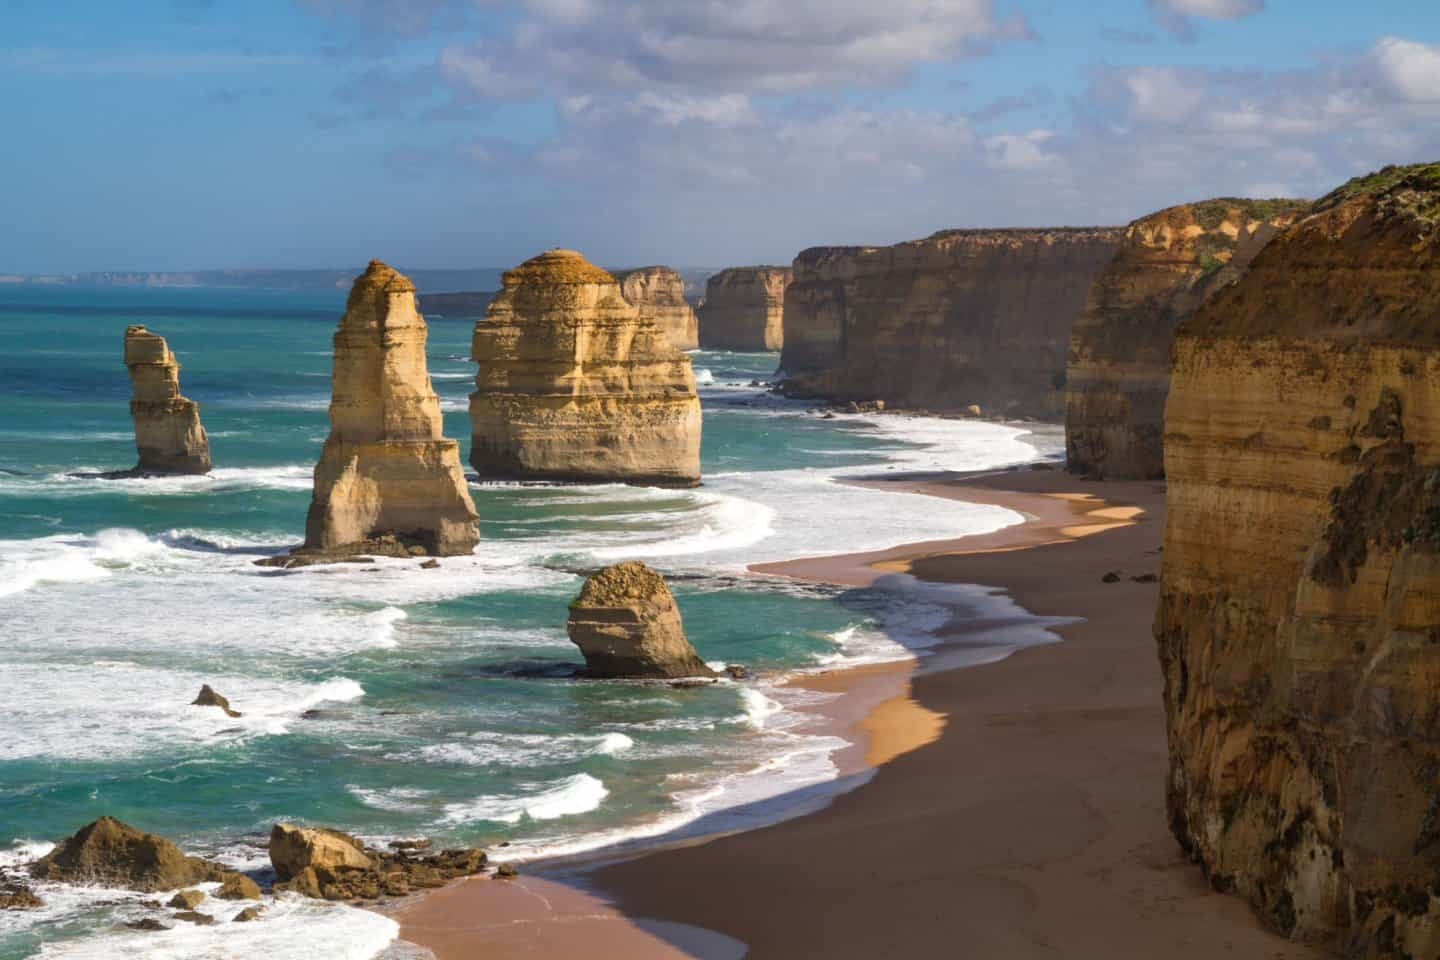 The 12 Apostles along the Great Ocean Road, Victoria, Australia